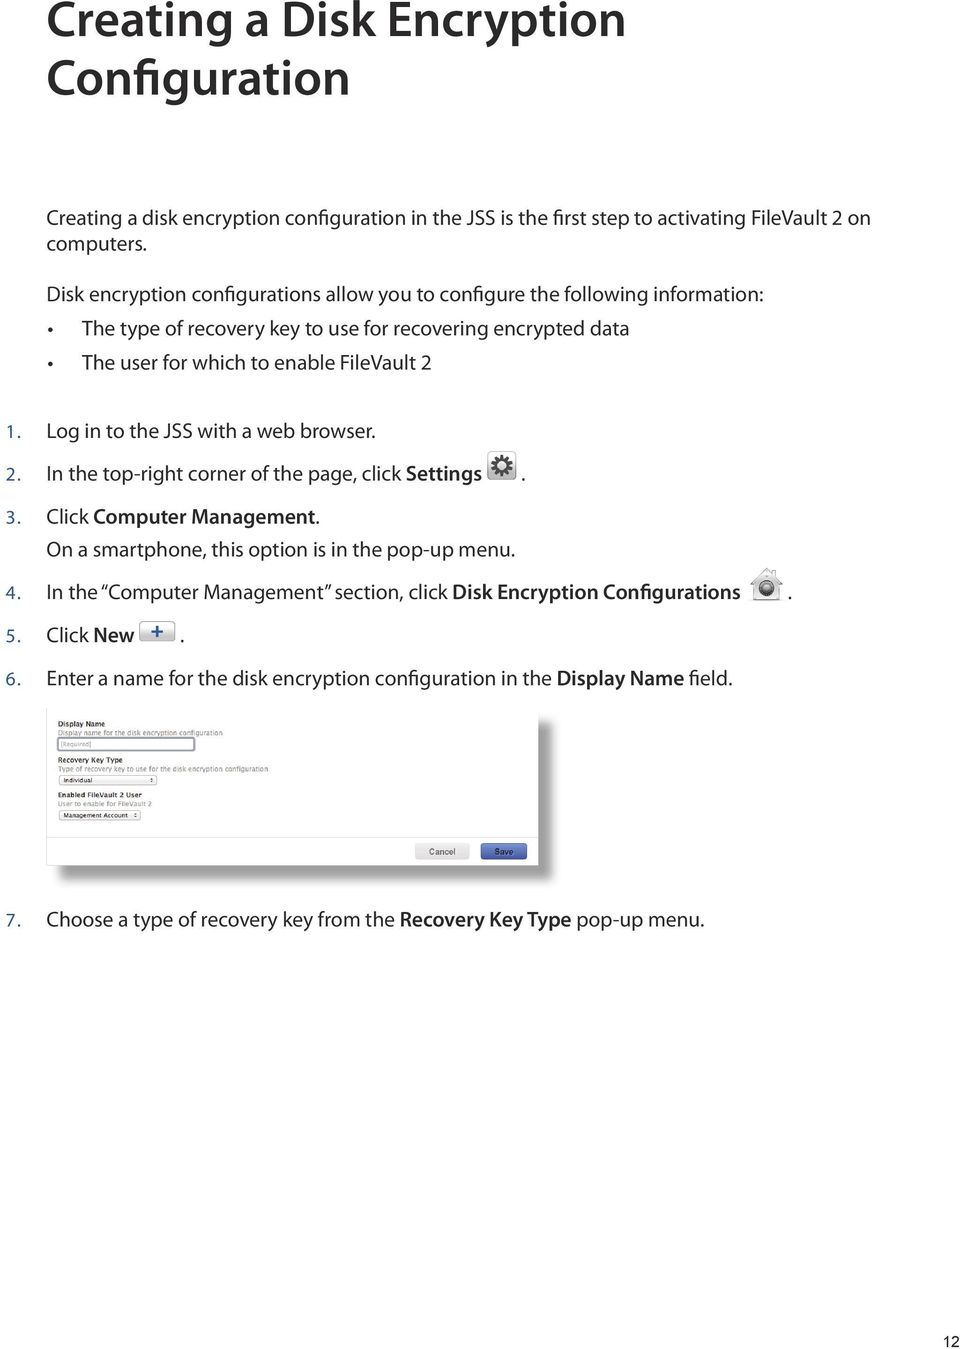 Log in to the JSS with a web browser. 2. In the top-right corner of the page, click Settings. 3. Click Computer Management. On a smartphone, this option is in the pop-up menu. 4.